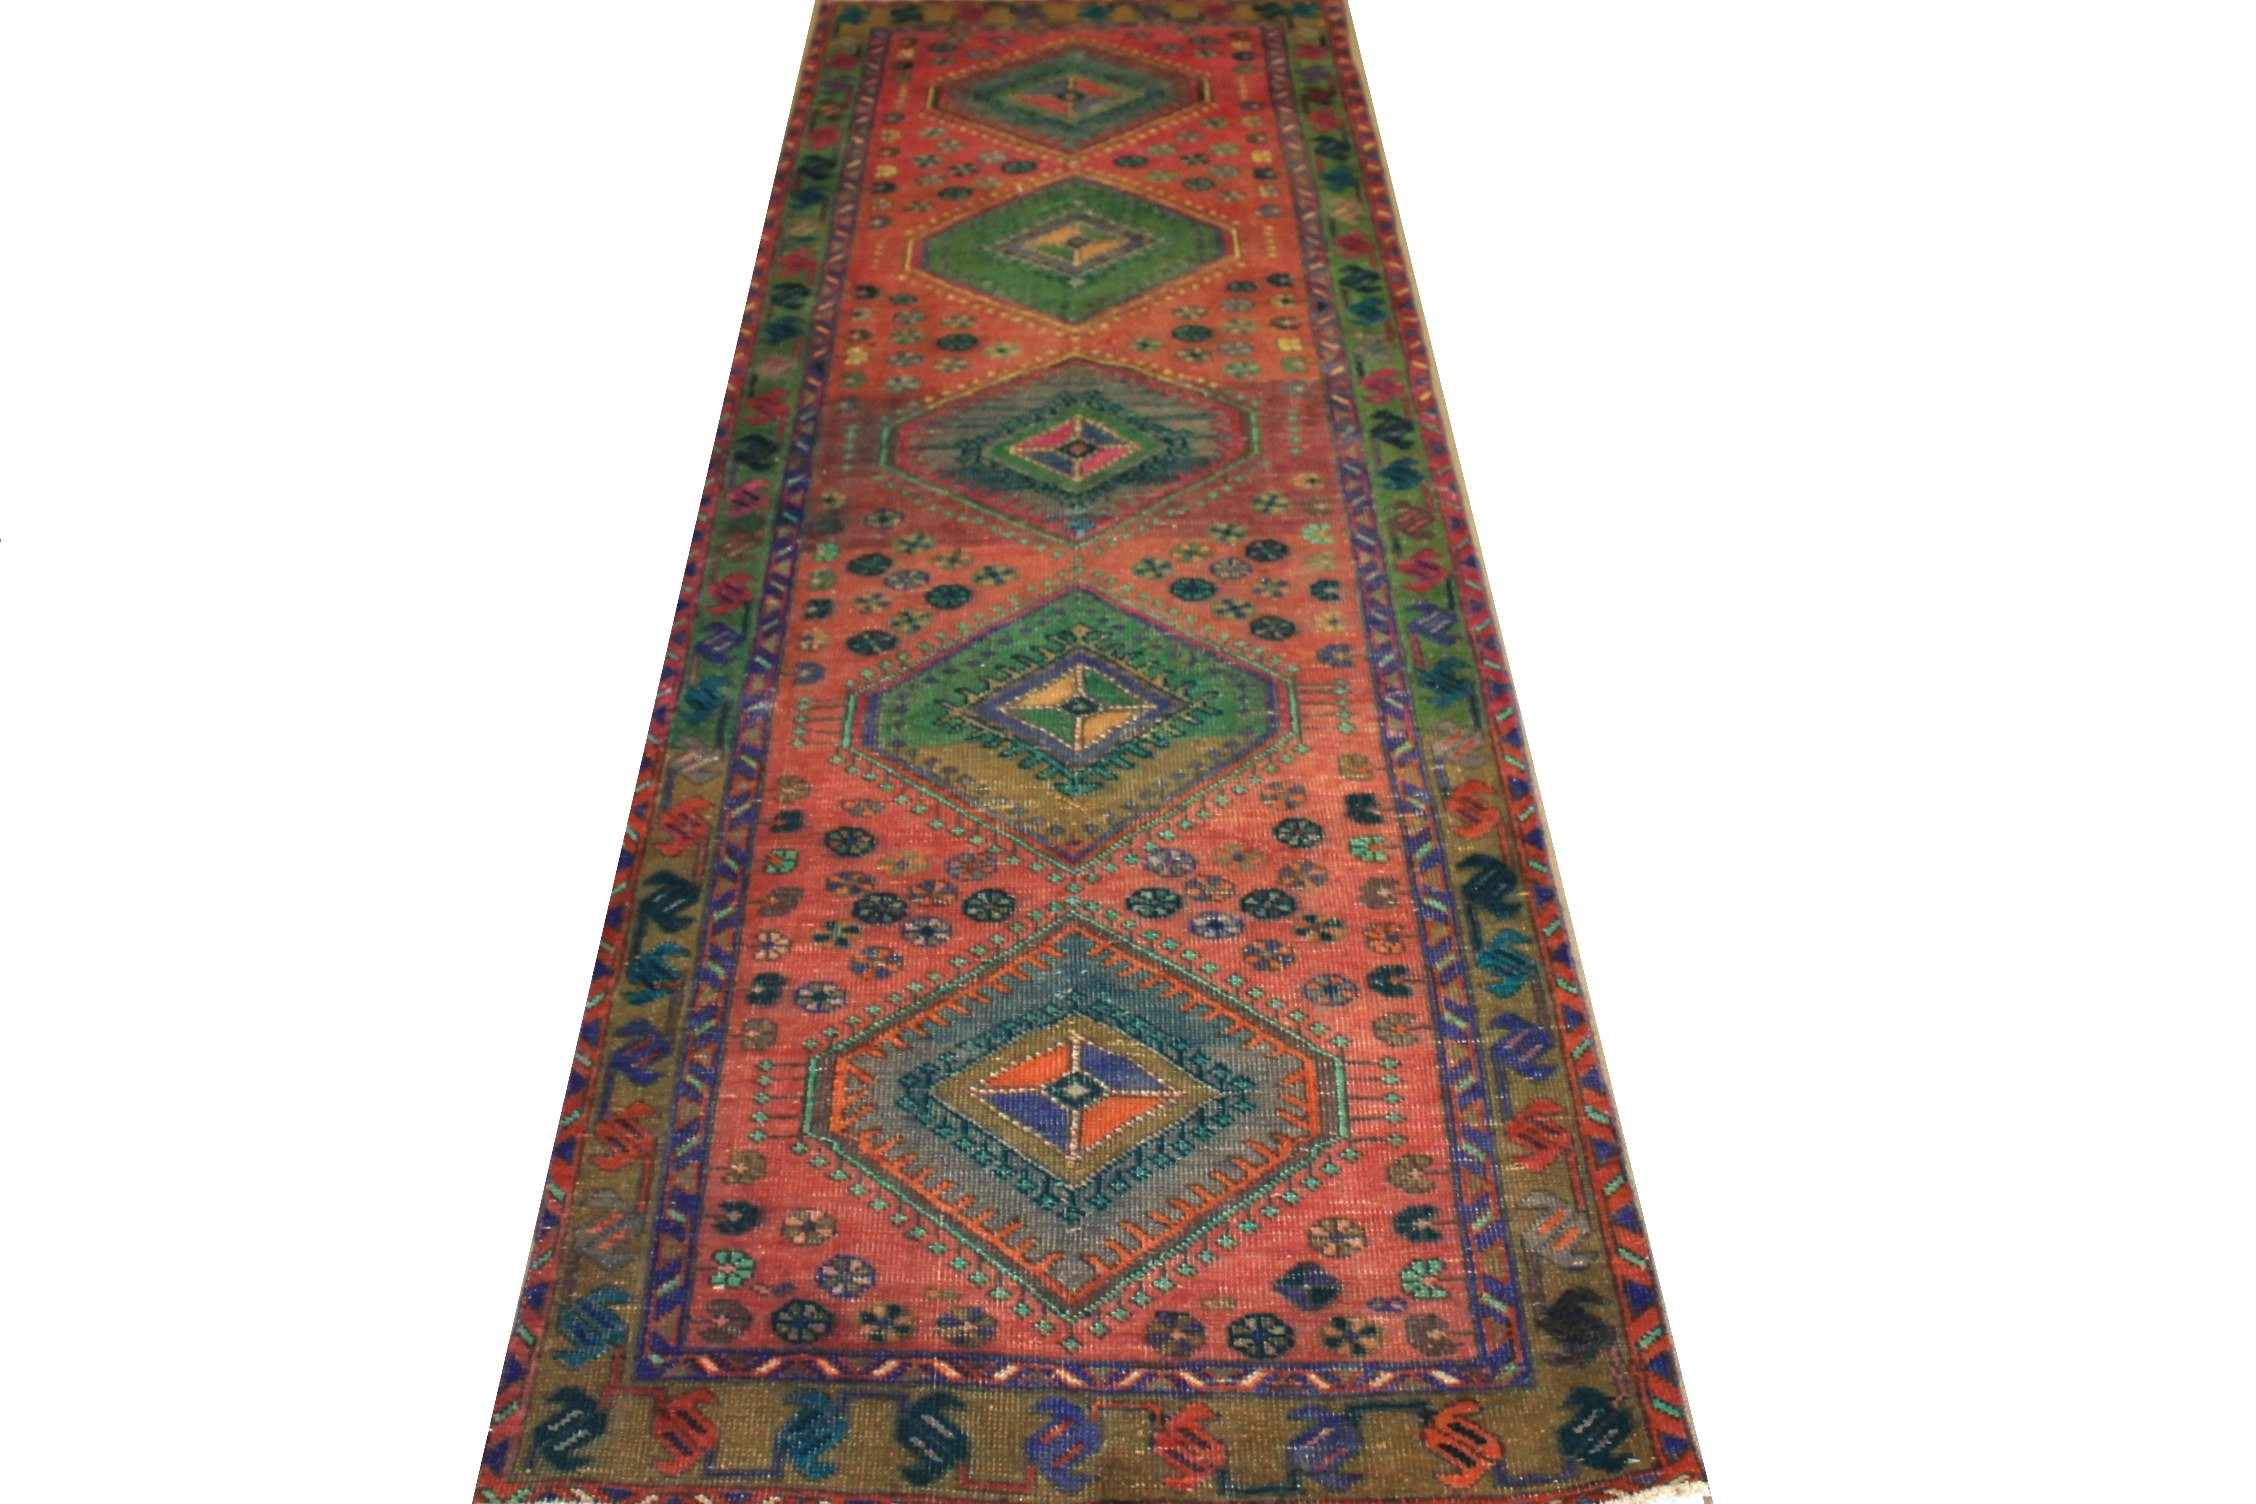 10 ft. Runner Vintage Hand Knotted Wool Area Rug - MR024457